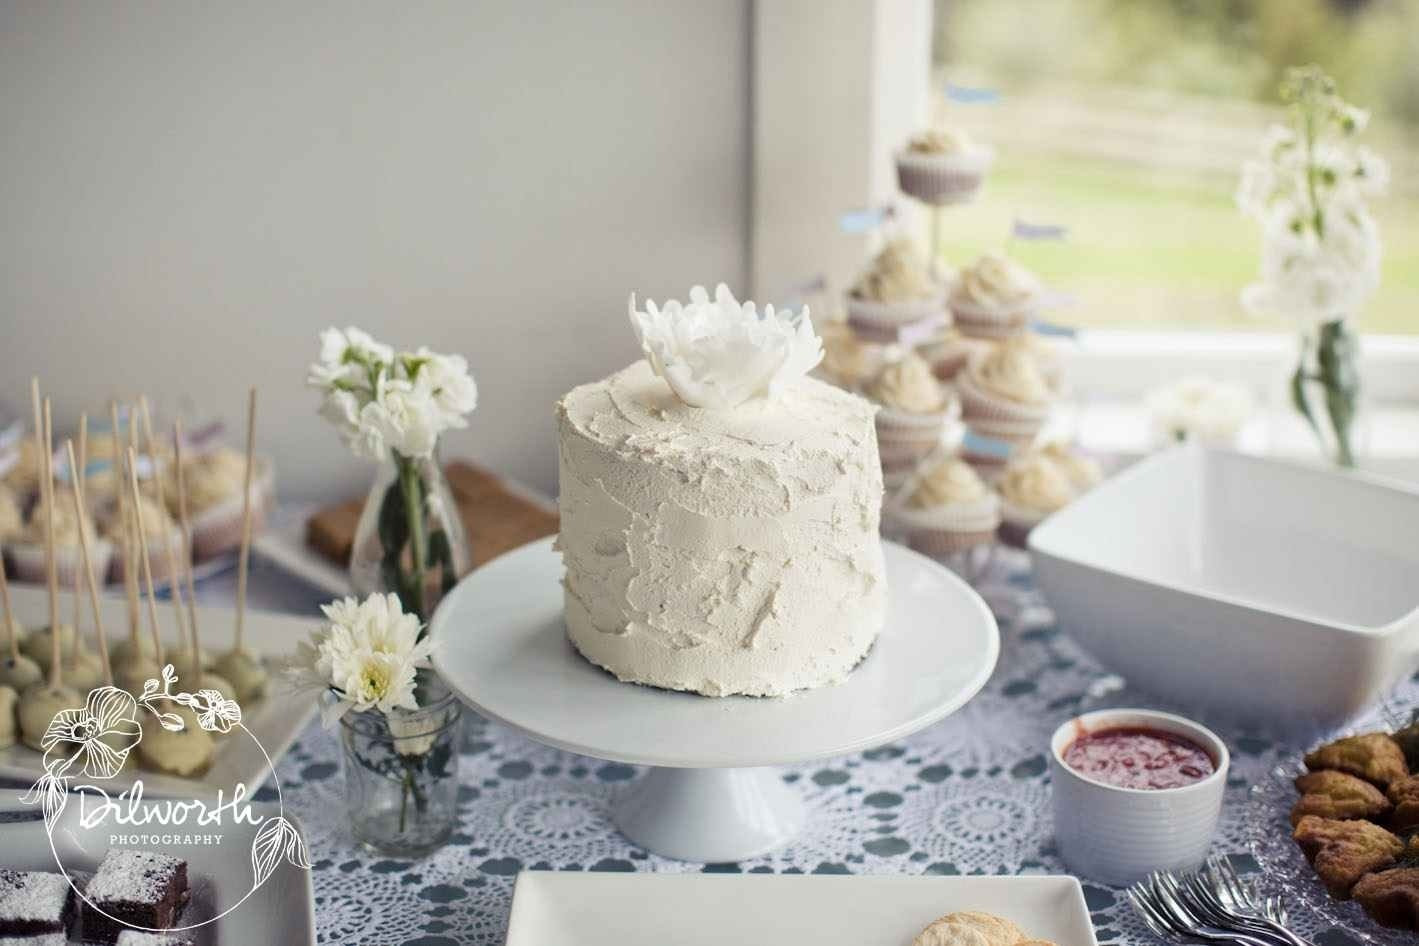 10 Amazing All White Baby Shower Ideas all white baby shower ideas baby ideas pink and white baby shower 2020